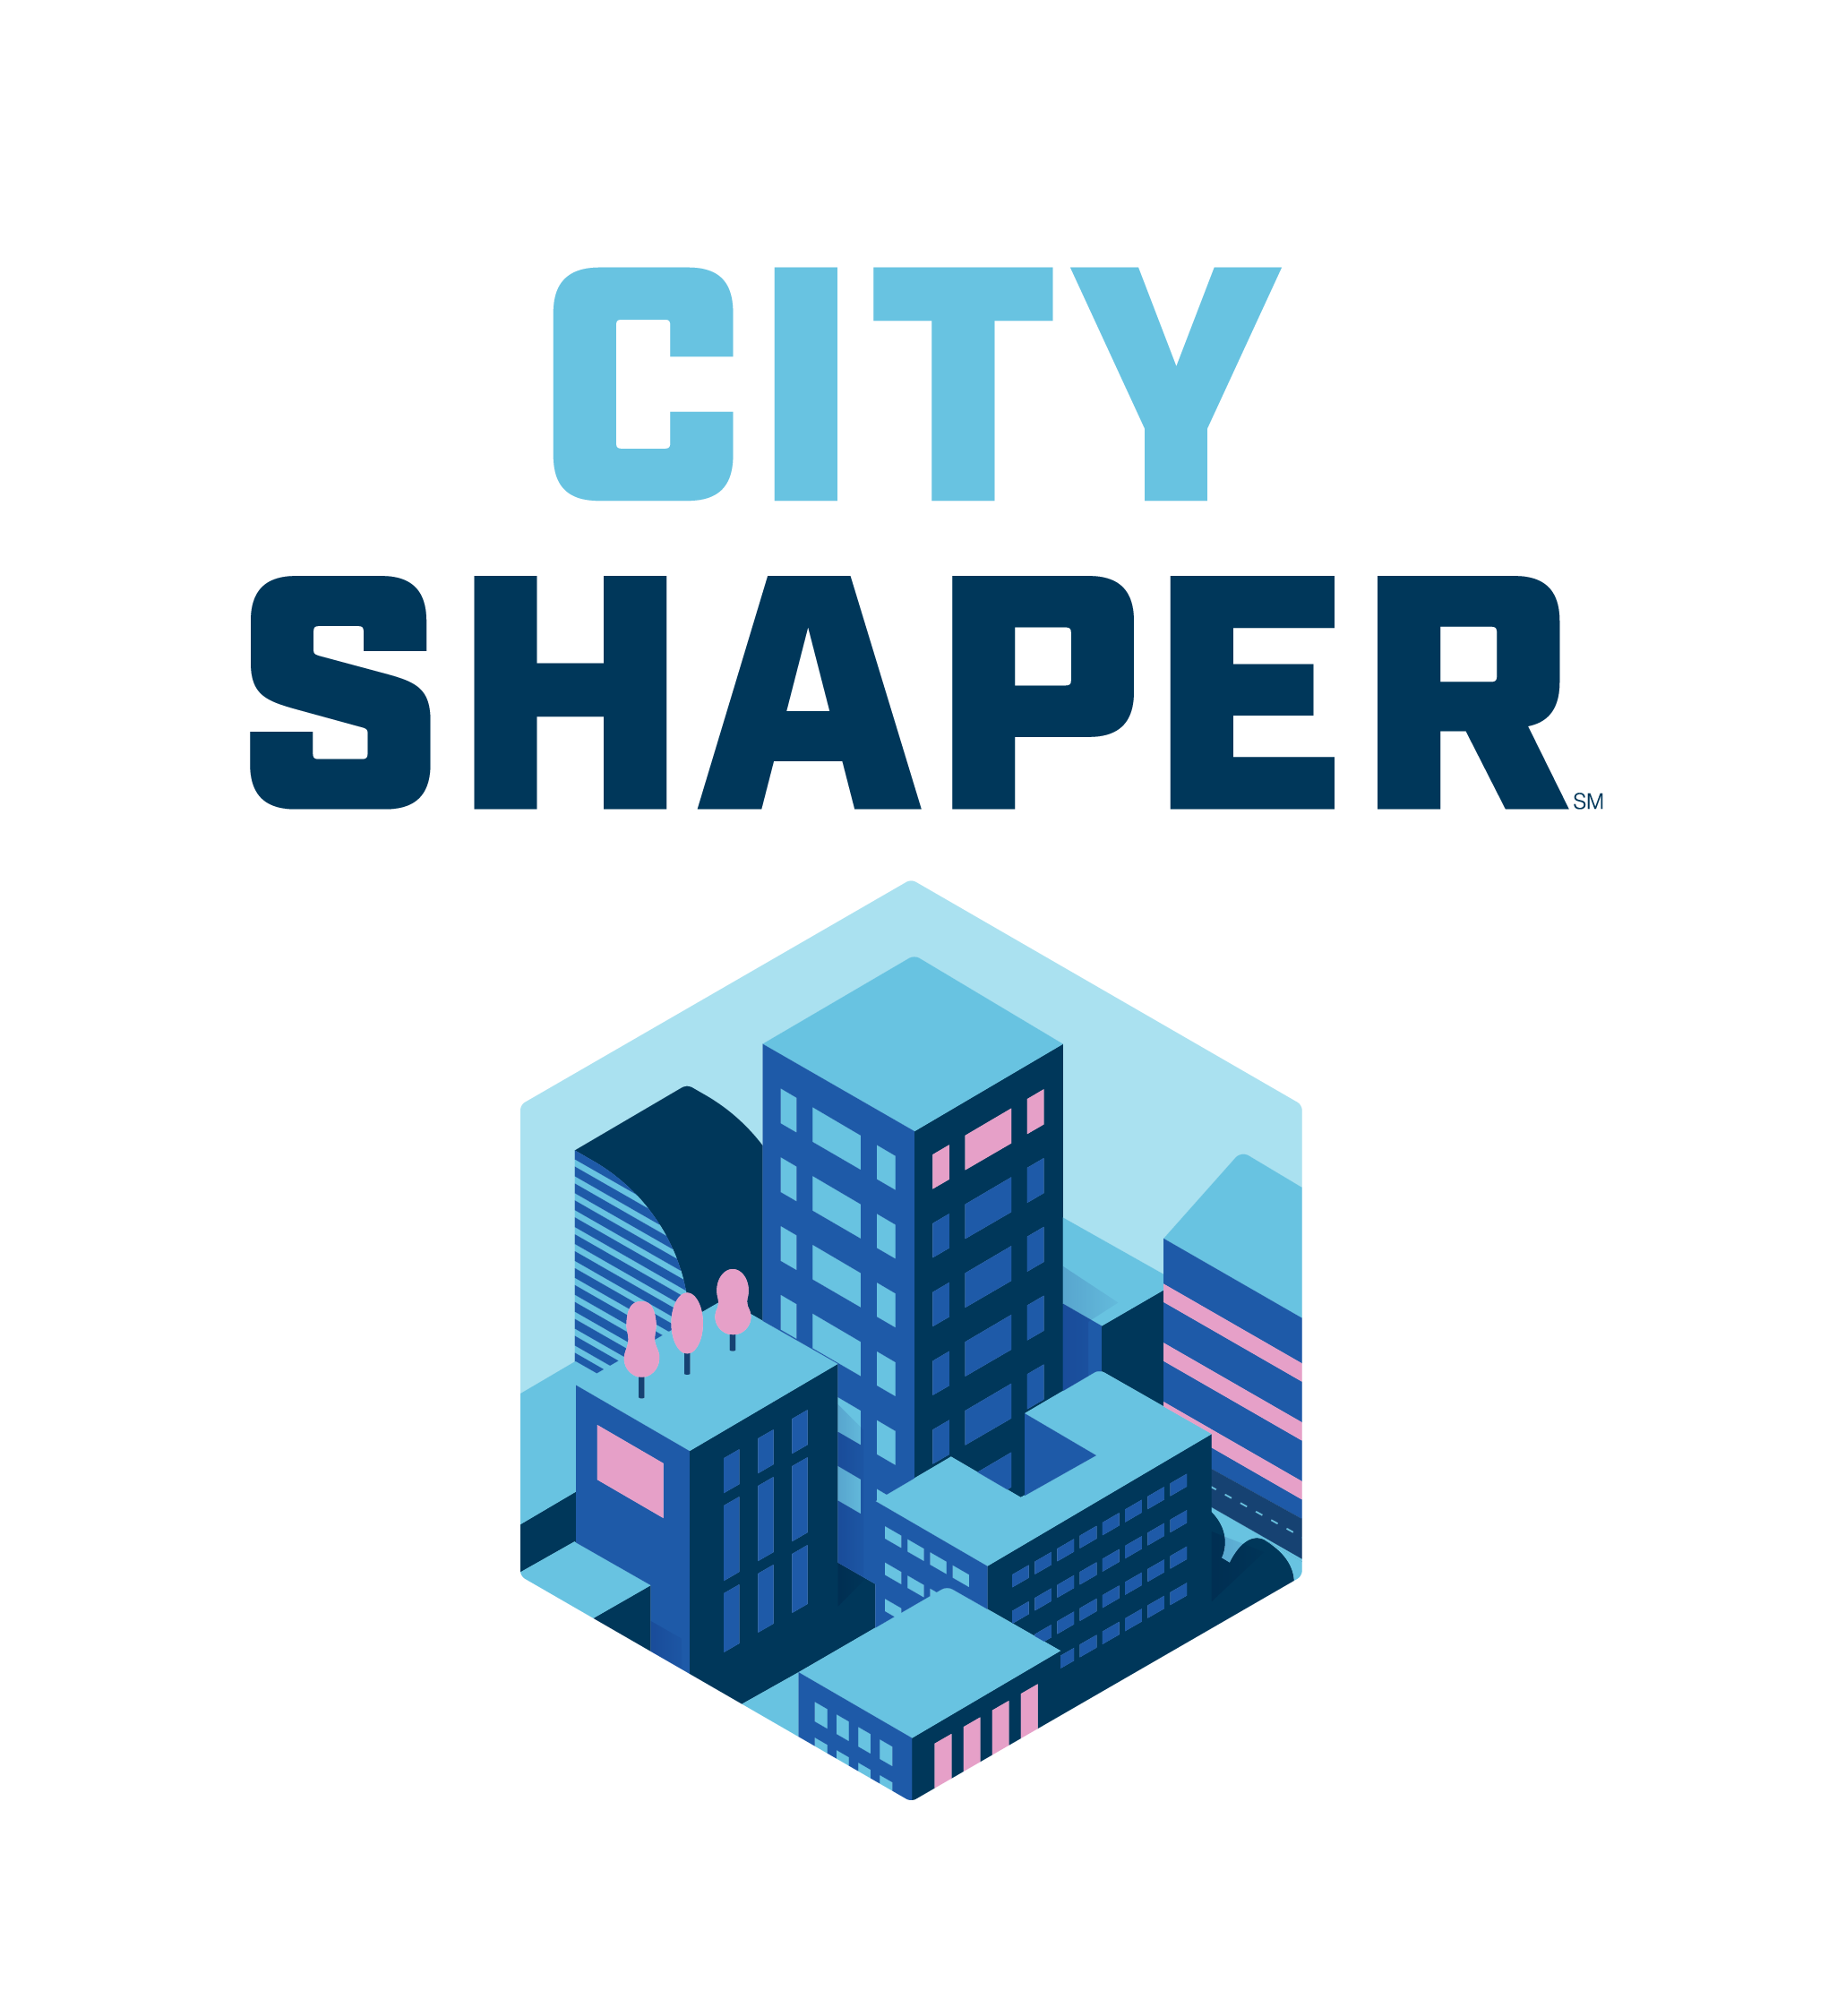 CITY SHAPER logo